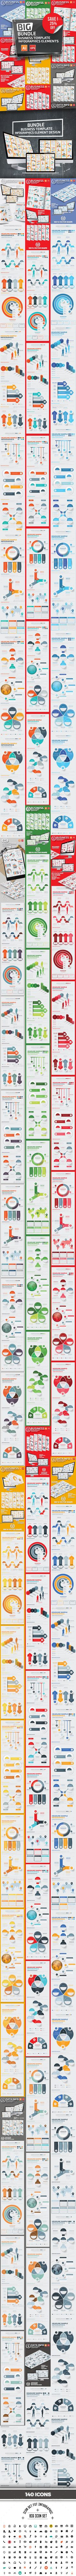 Bundle 10 in 1 Business Infographics Template - graphicriver.net Item for Sale